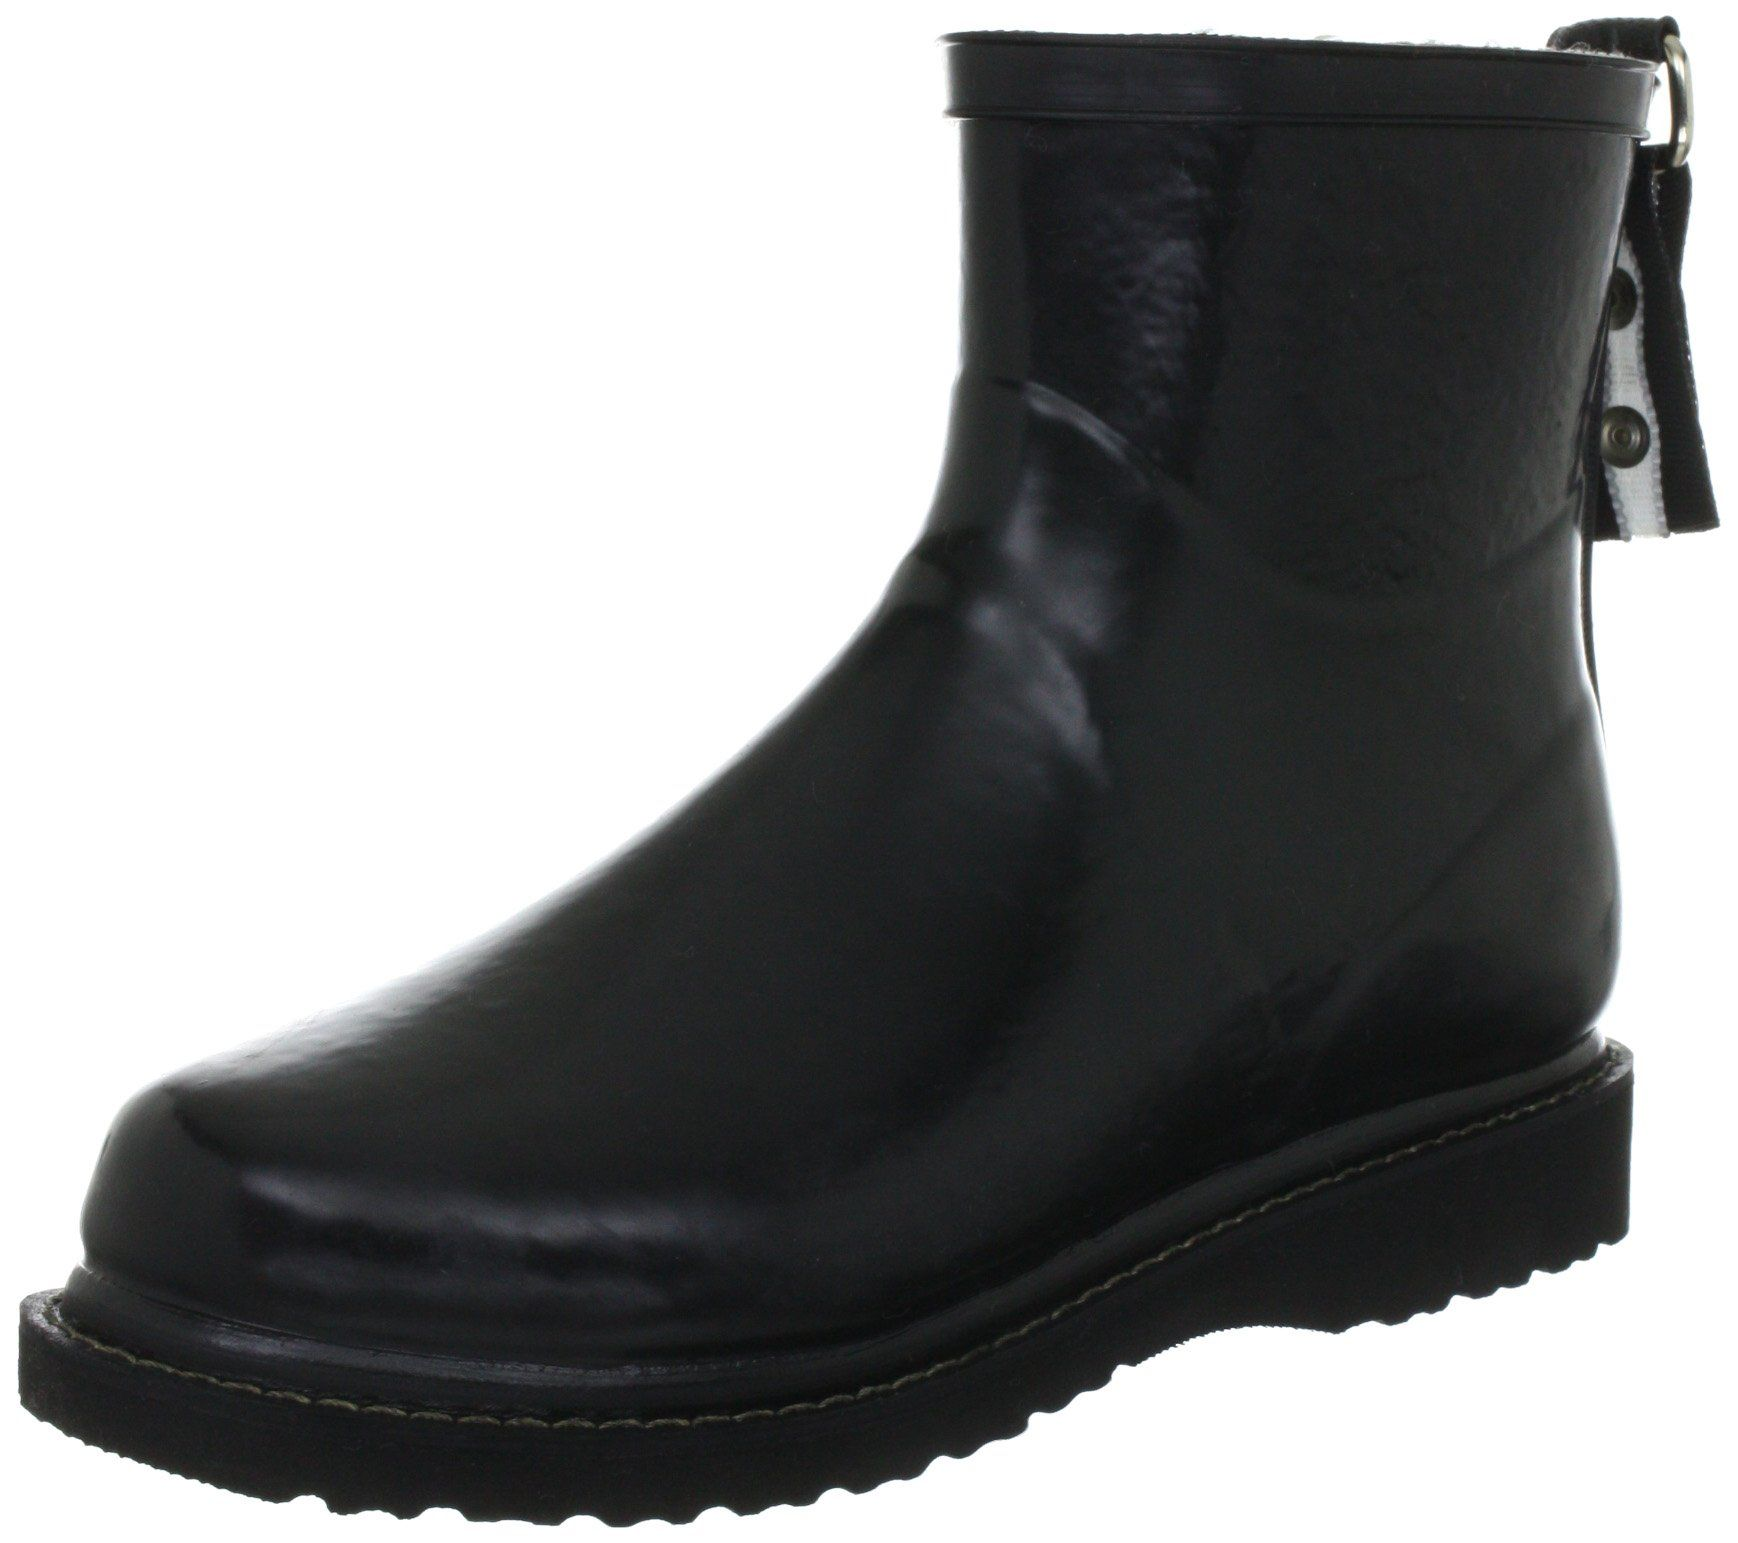 Womens RUB53 Cold lined rubber boots long length Ilse Jacobsen BbdFMhR